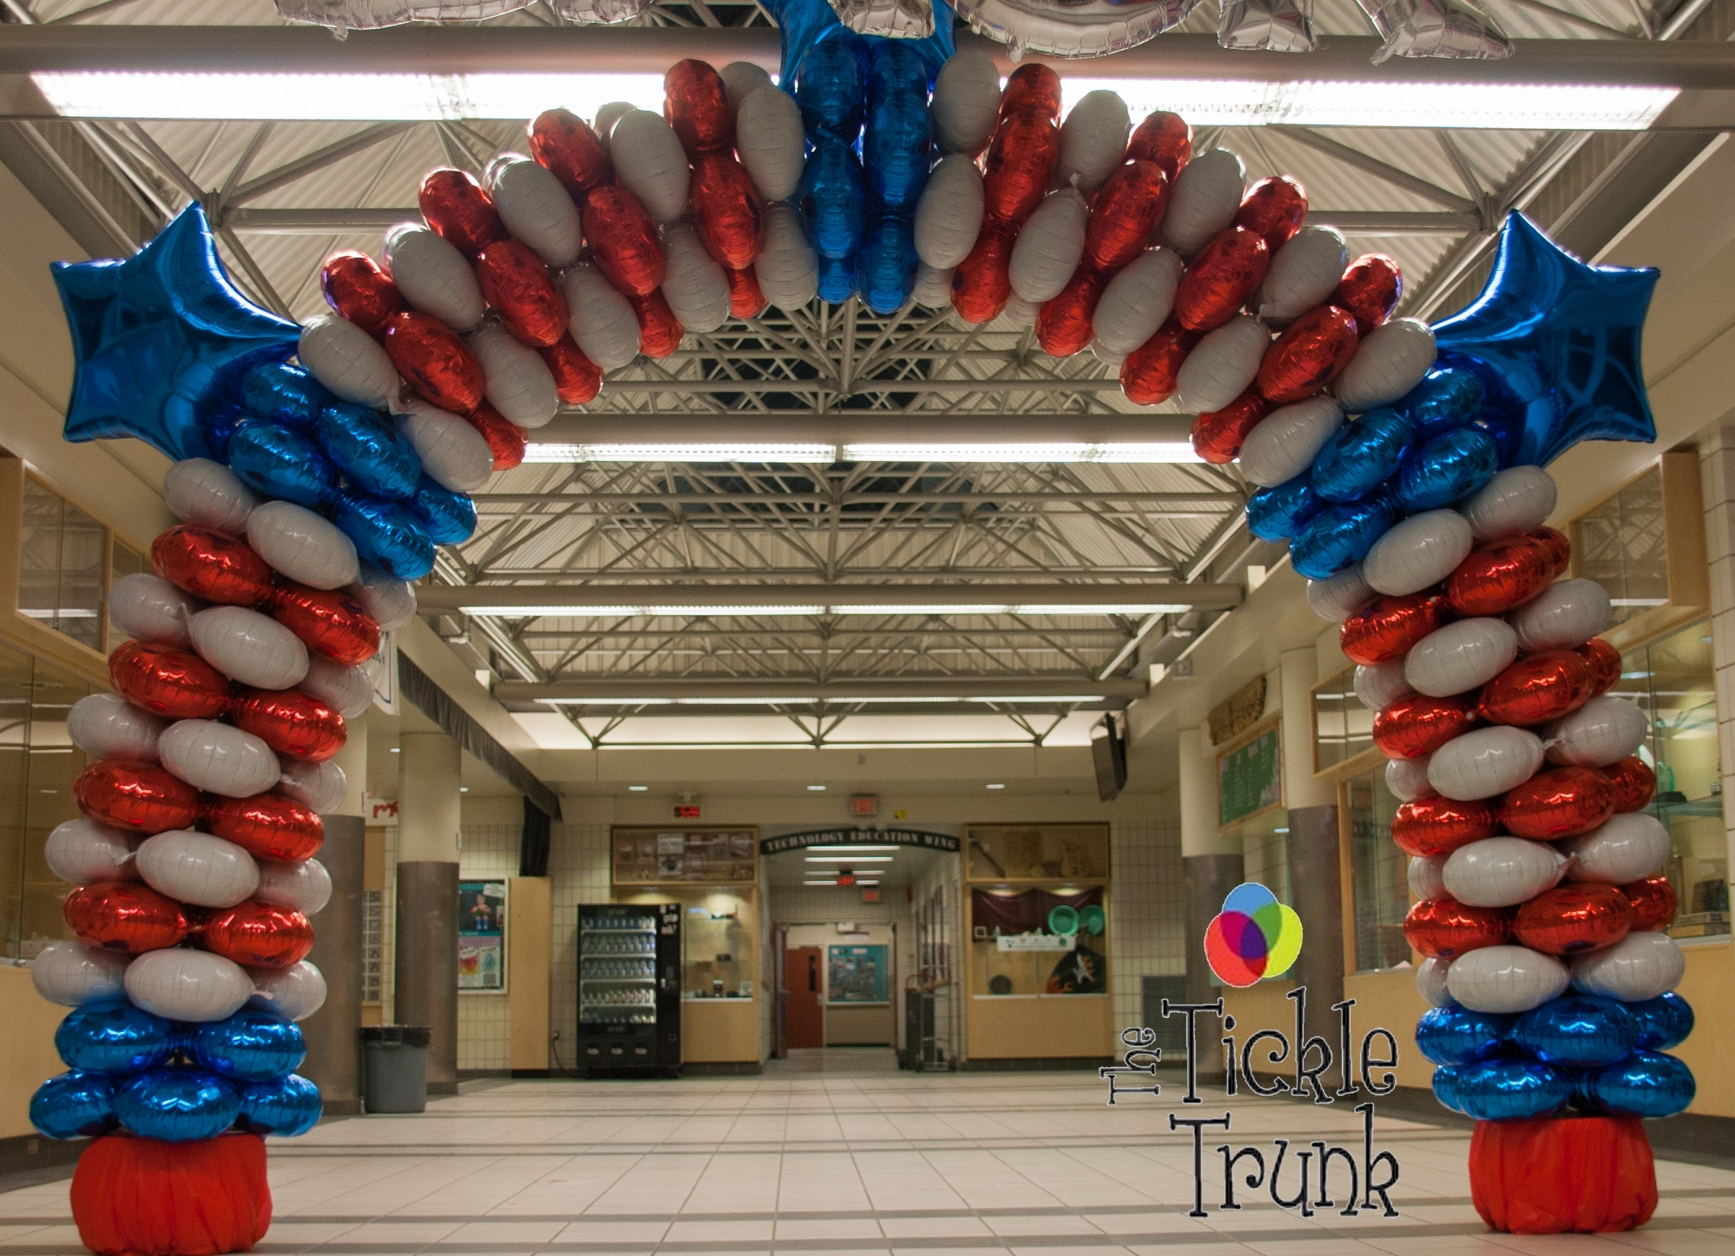 Mylar Balloon Arch magic arch balloon arch red white blue with stars The Tickle